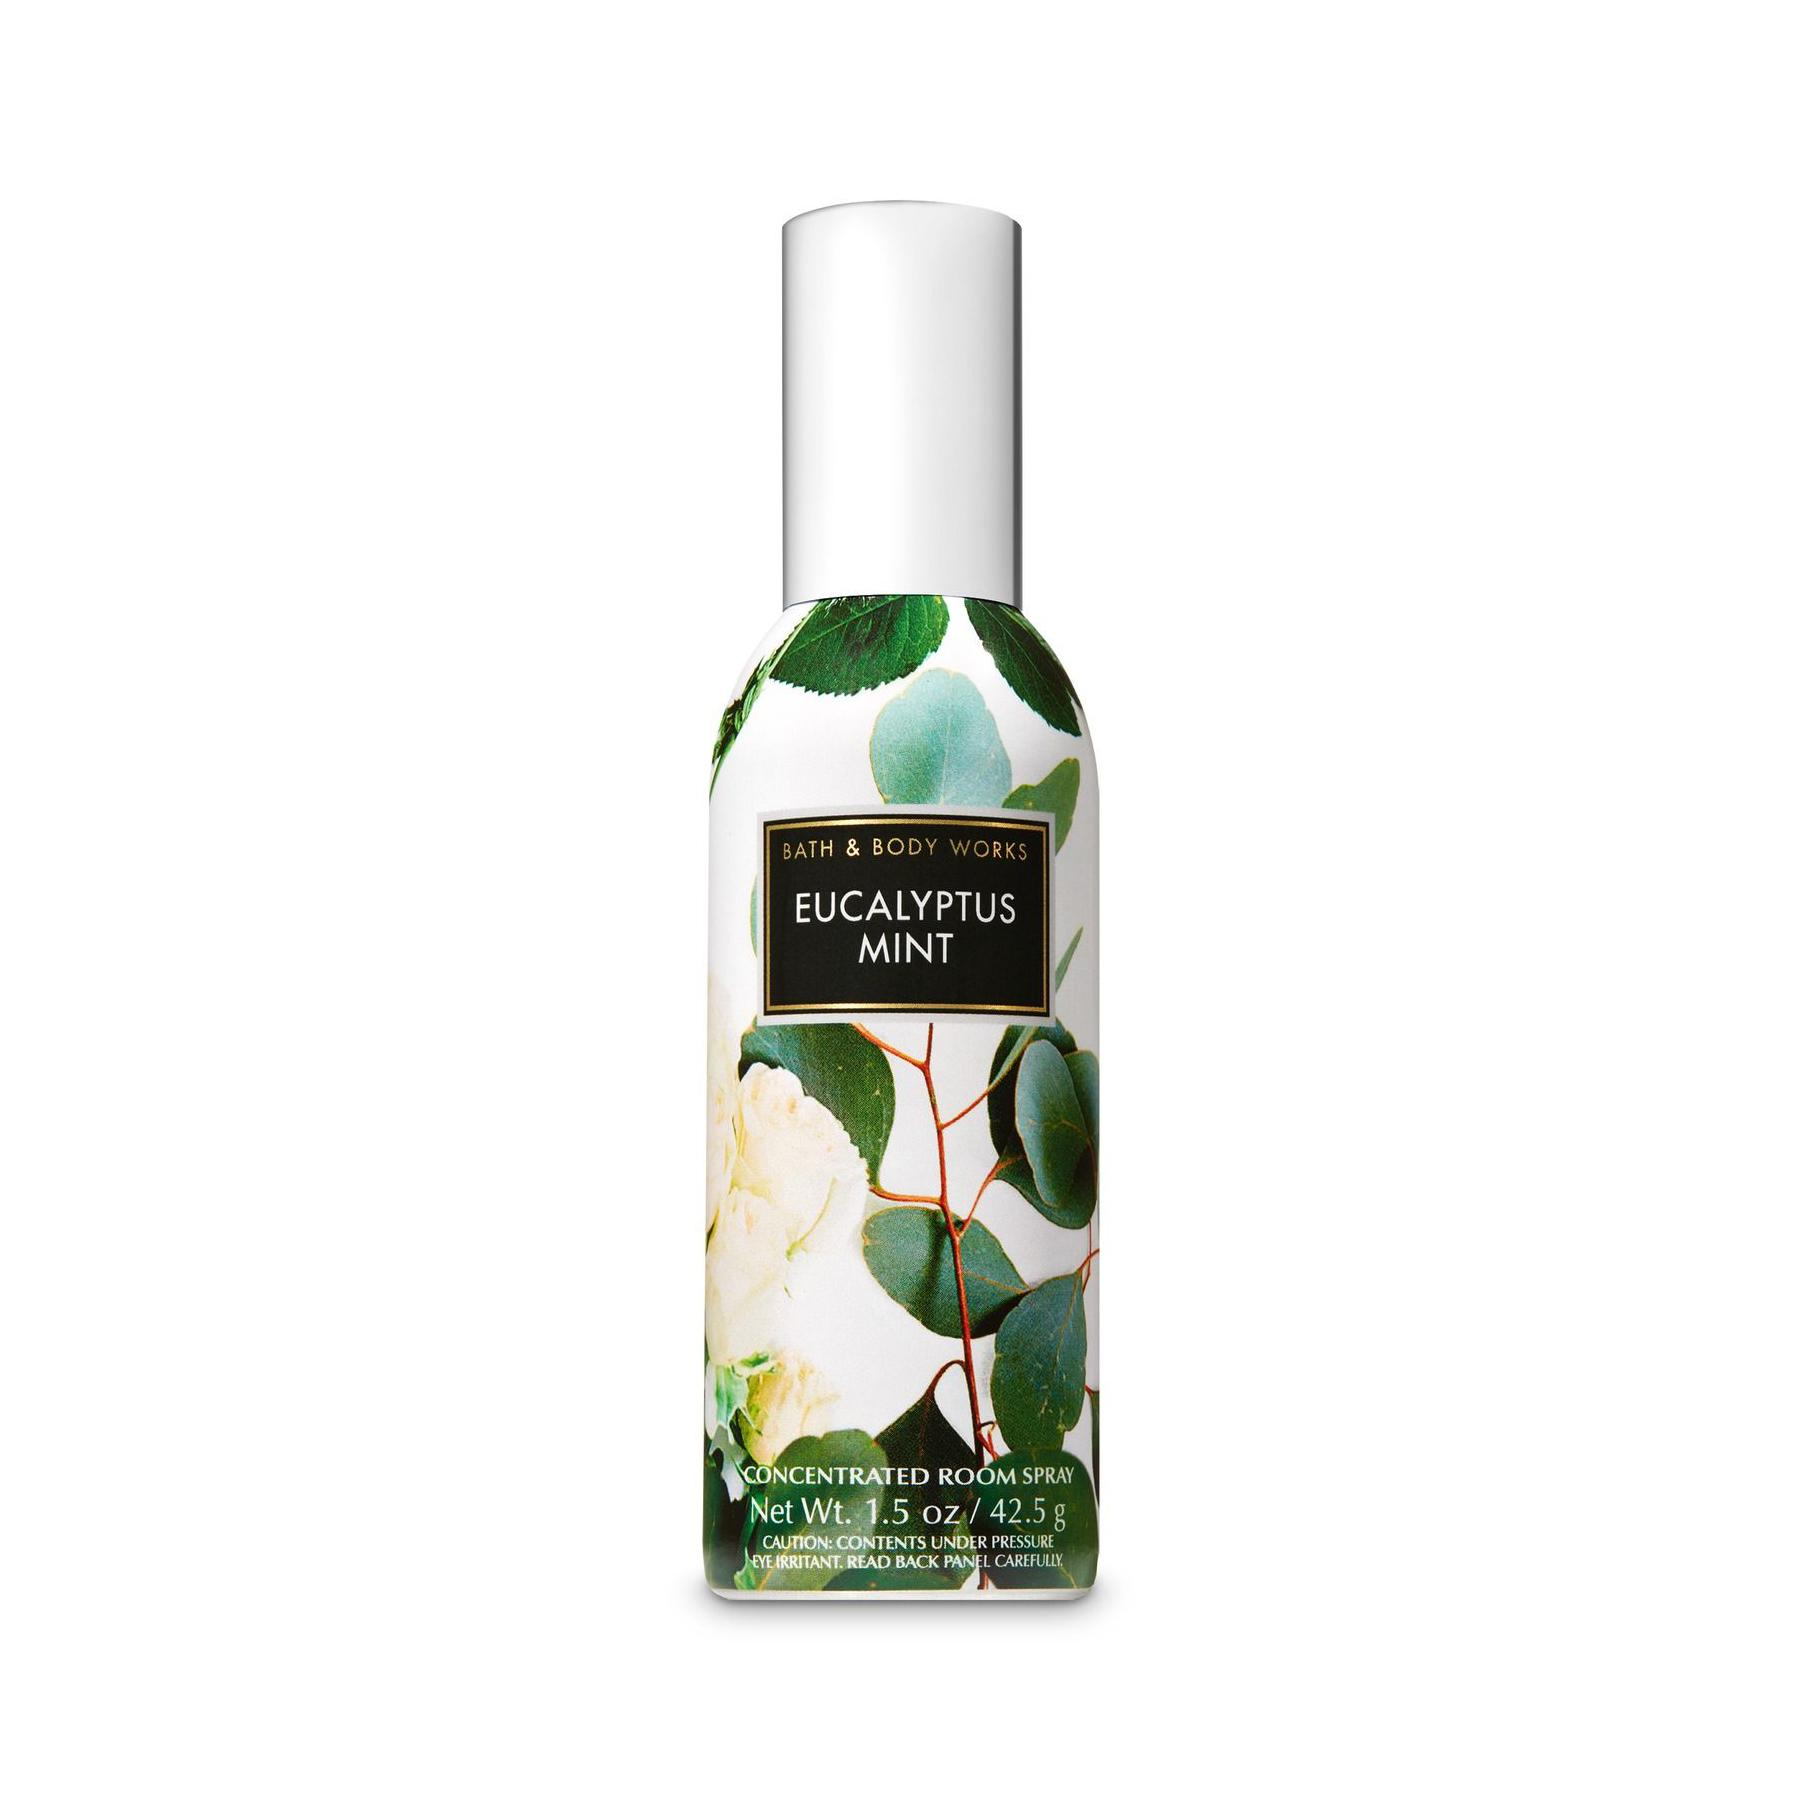 Bath and Body Works Eucalyptus Mint Concentrated Room Spray 1.5 oz / 42.5g